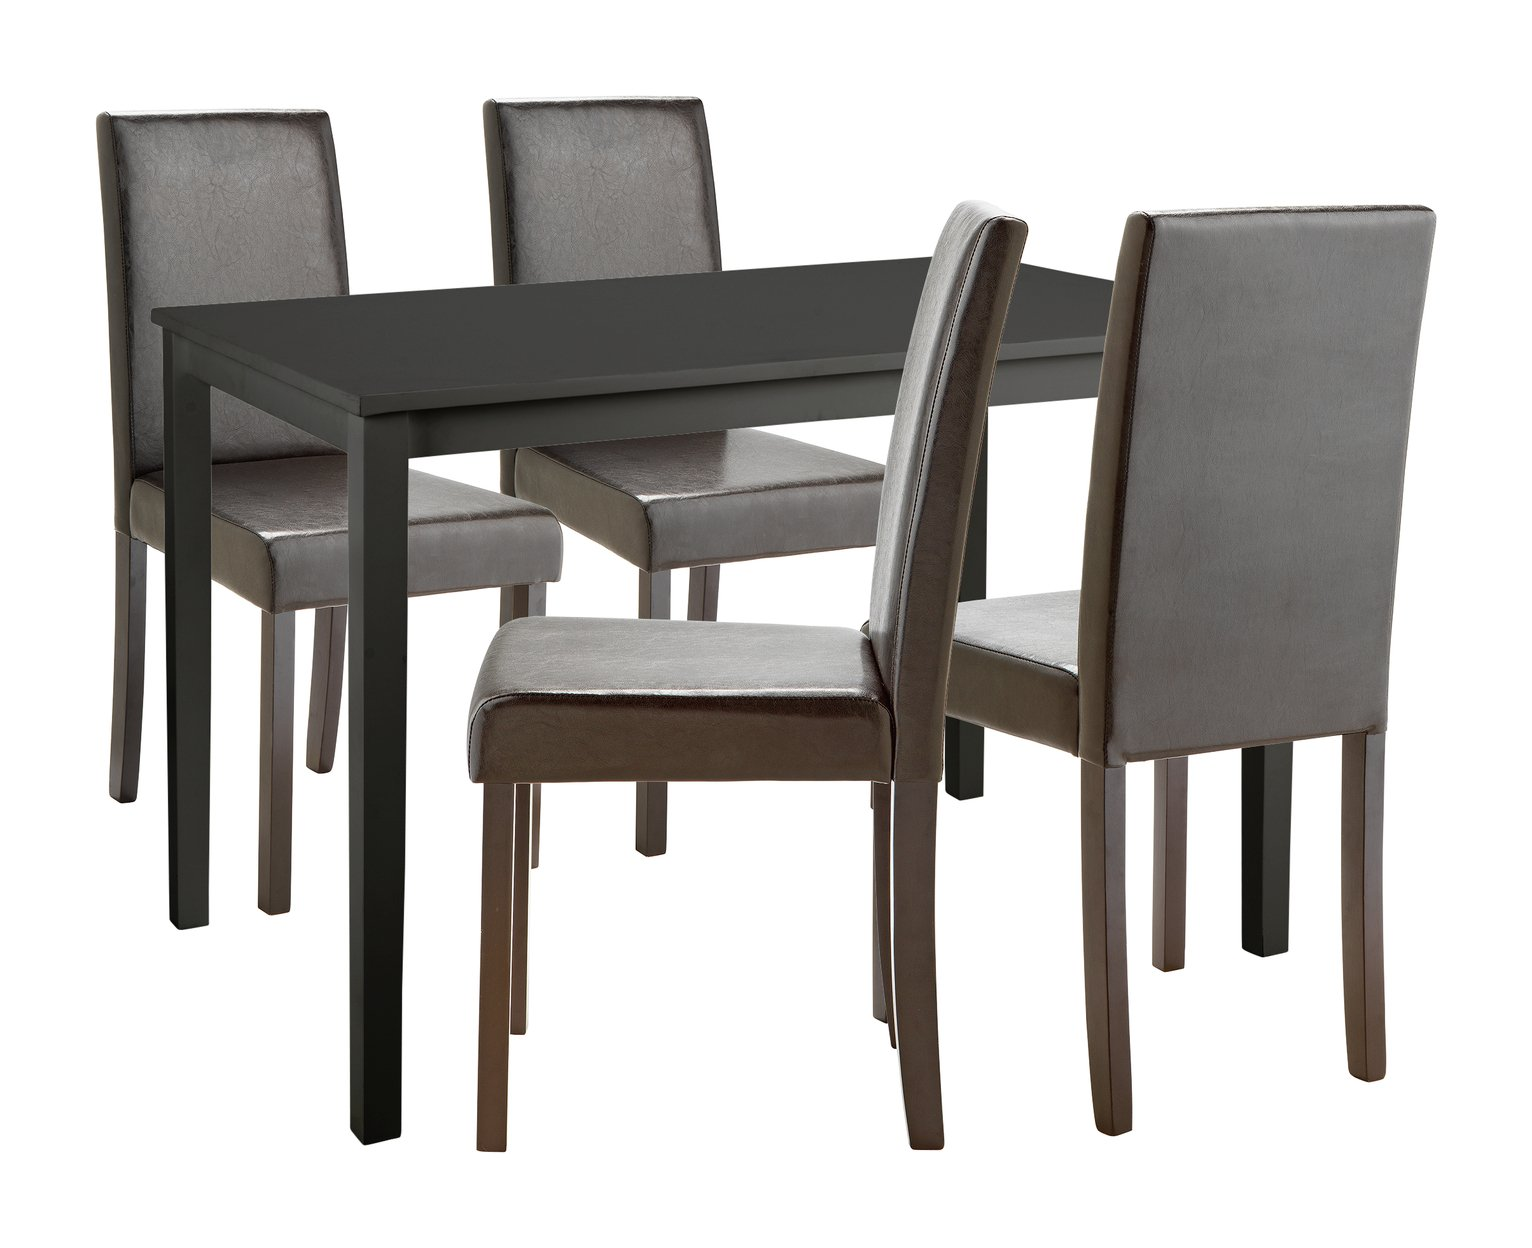 Image of HOME Alcott Dining Table & 4 Chairs - Black